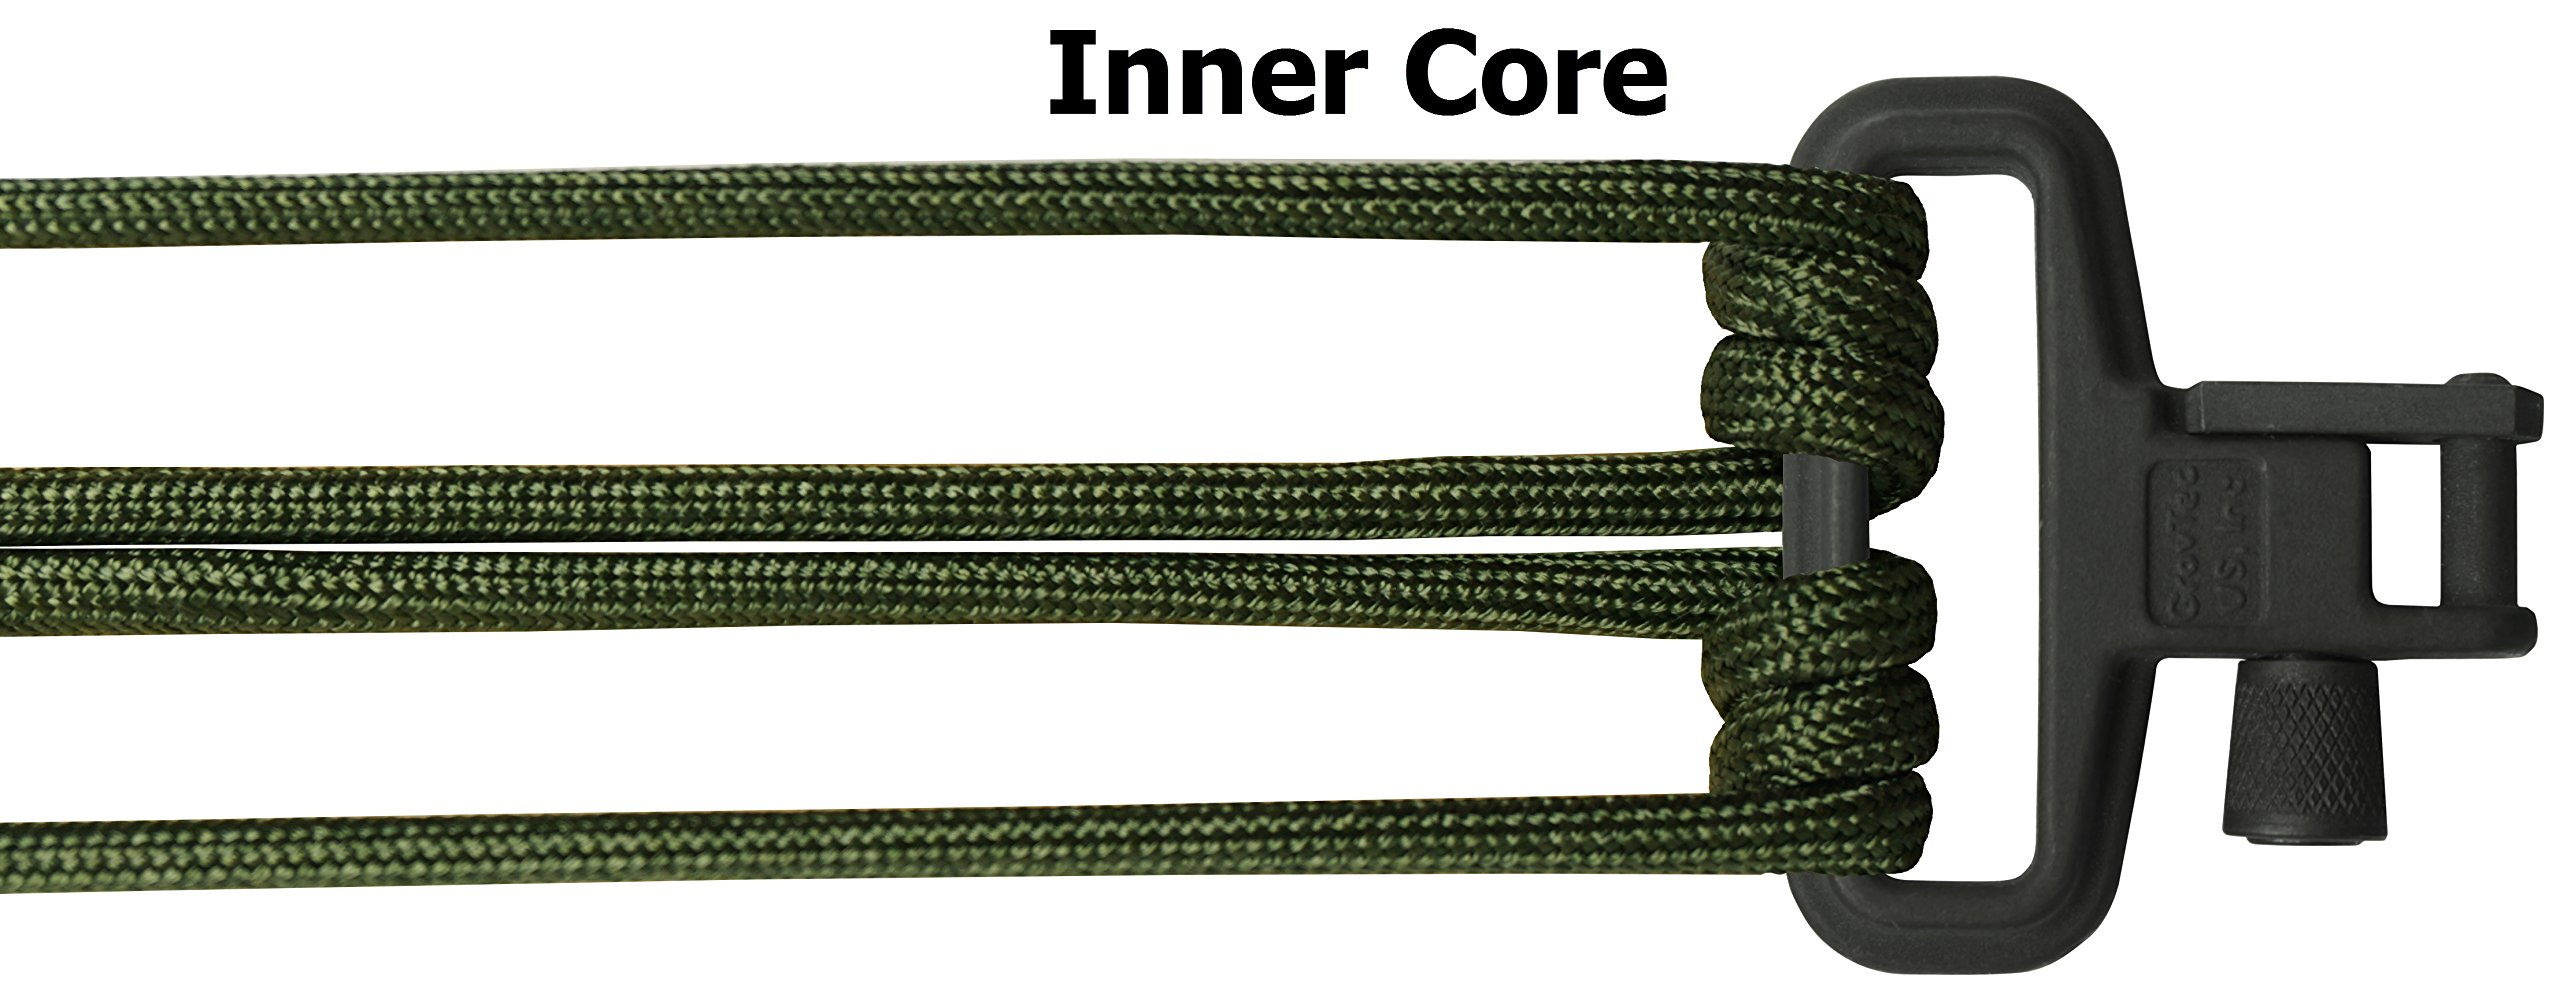 TOUGH-GRID Backbone(TM) Paracord Rifle Sling - Gun Sling/Rifle Sling - Handmade in The USA with Authentic Mil-Spec 750lb Type IV Paracord and Mil-Spec Swivels (BackBone70CGBoa) by TOUGH-GRID (Image #5)